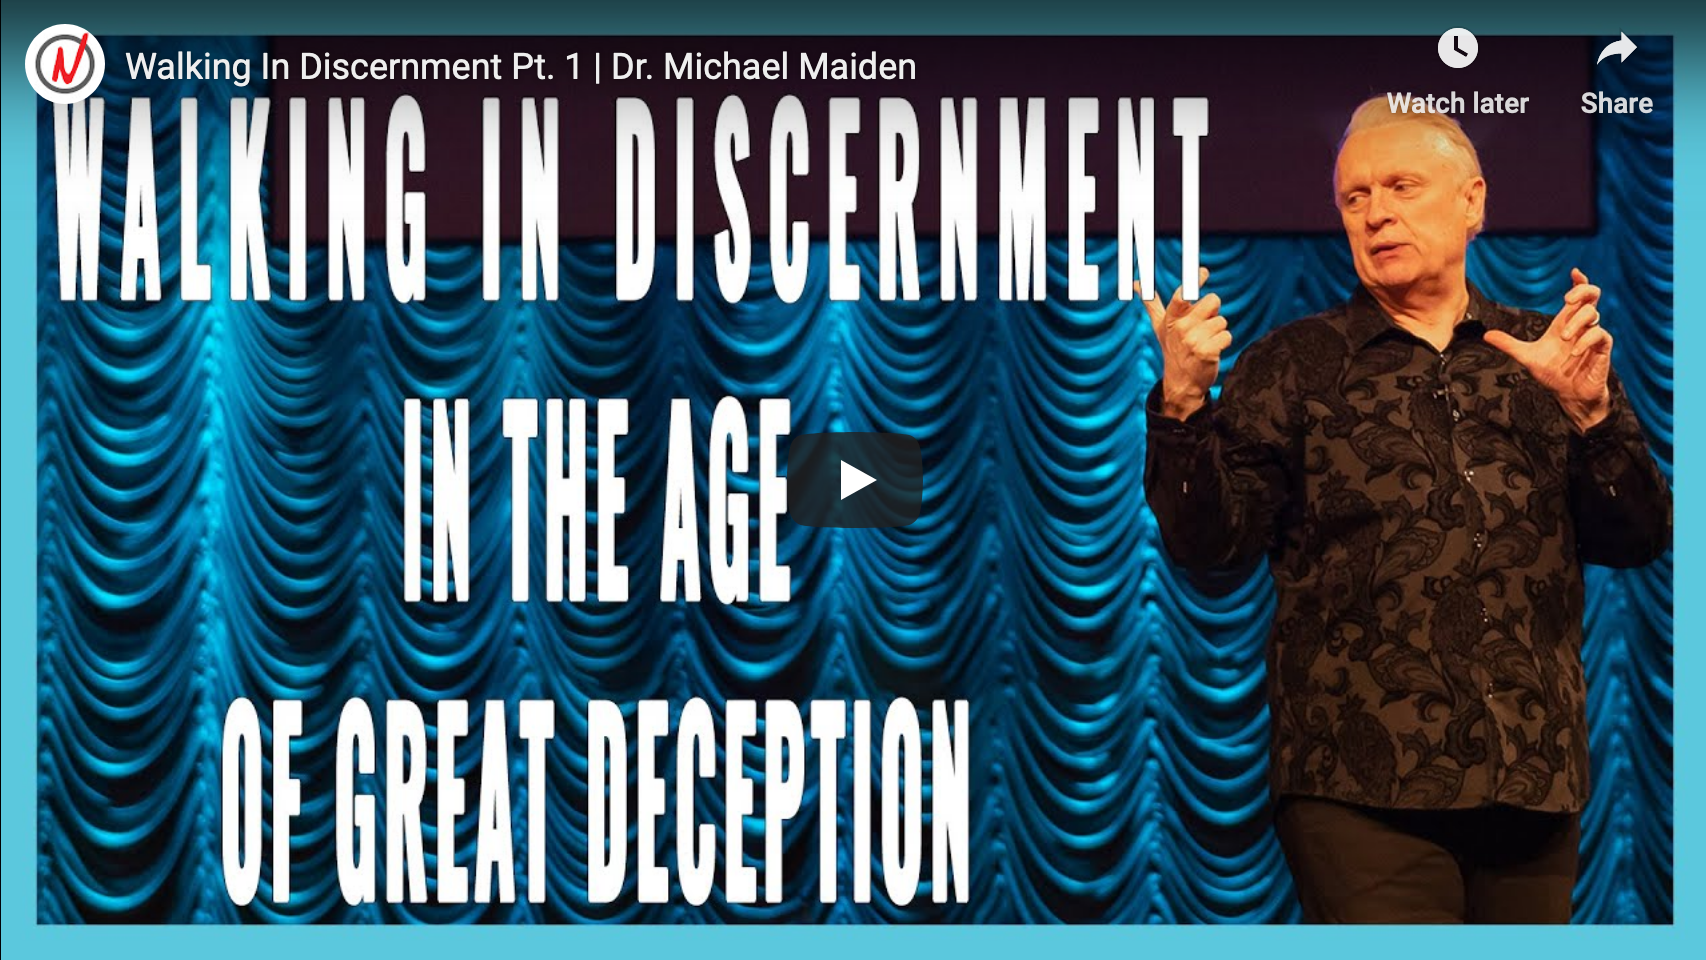 Walking in Discernment in the Age of Great Deception Part 1